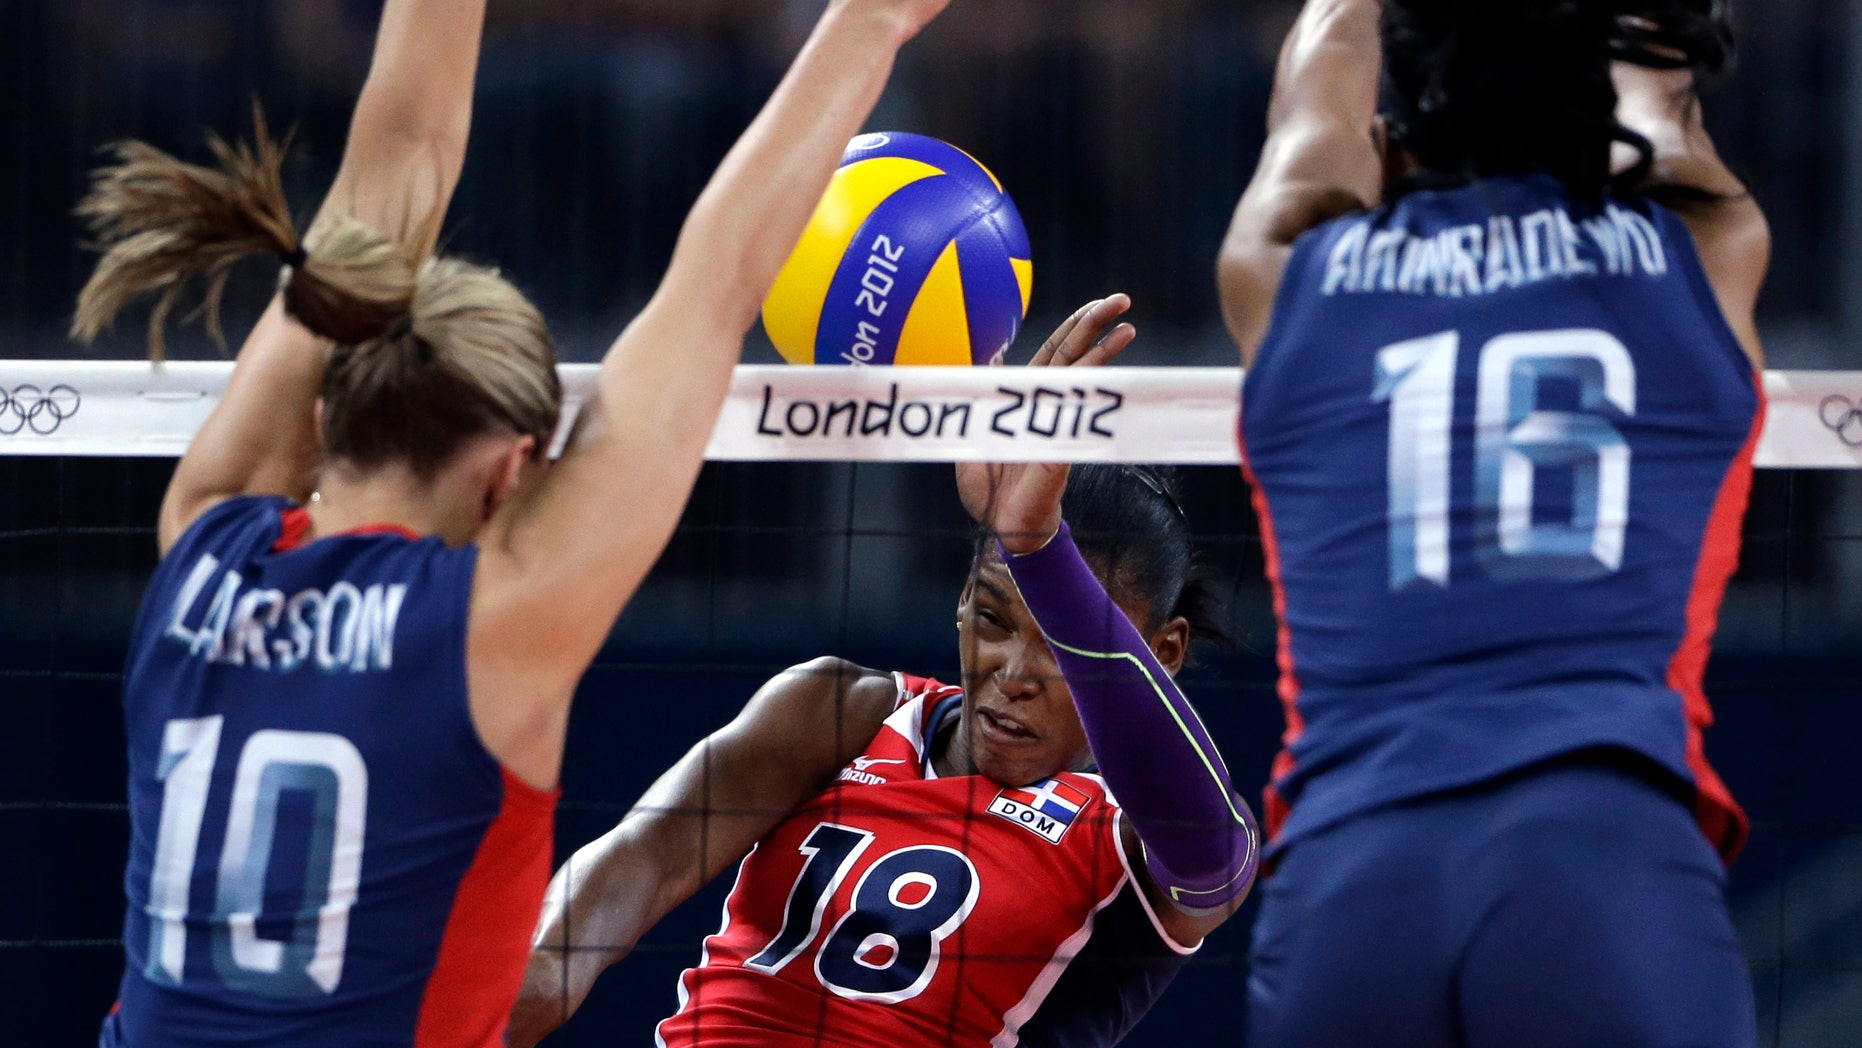 Aug. 7, 2012: United States' Jordan Larson, left, and Foluke Akinradewo, right, block a spike from Dominican Republic's Bethania de la Cruz de Pena during a women's quarterfinal volleyball match at the 2012 Summer Olympics in London.